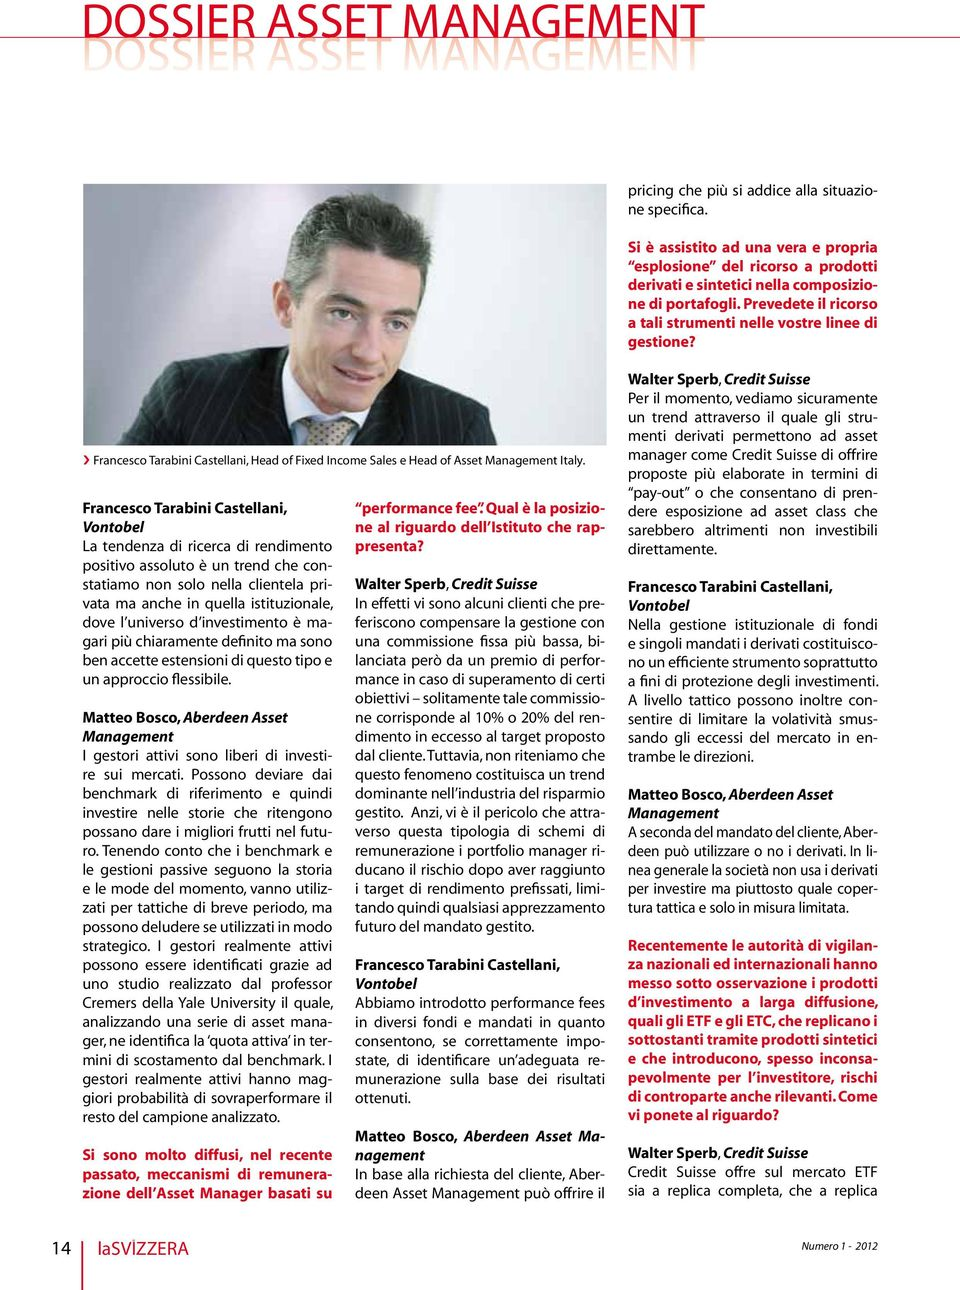 Francesco Tarabini Castellani, Head of Fixed Income Sales e Head of Asset Management Italy.